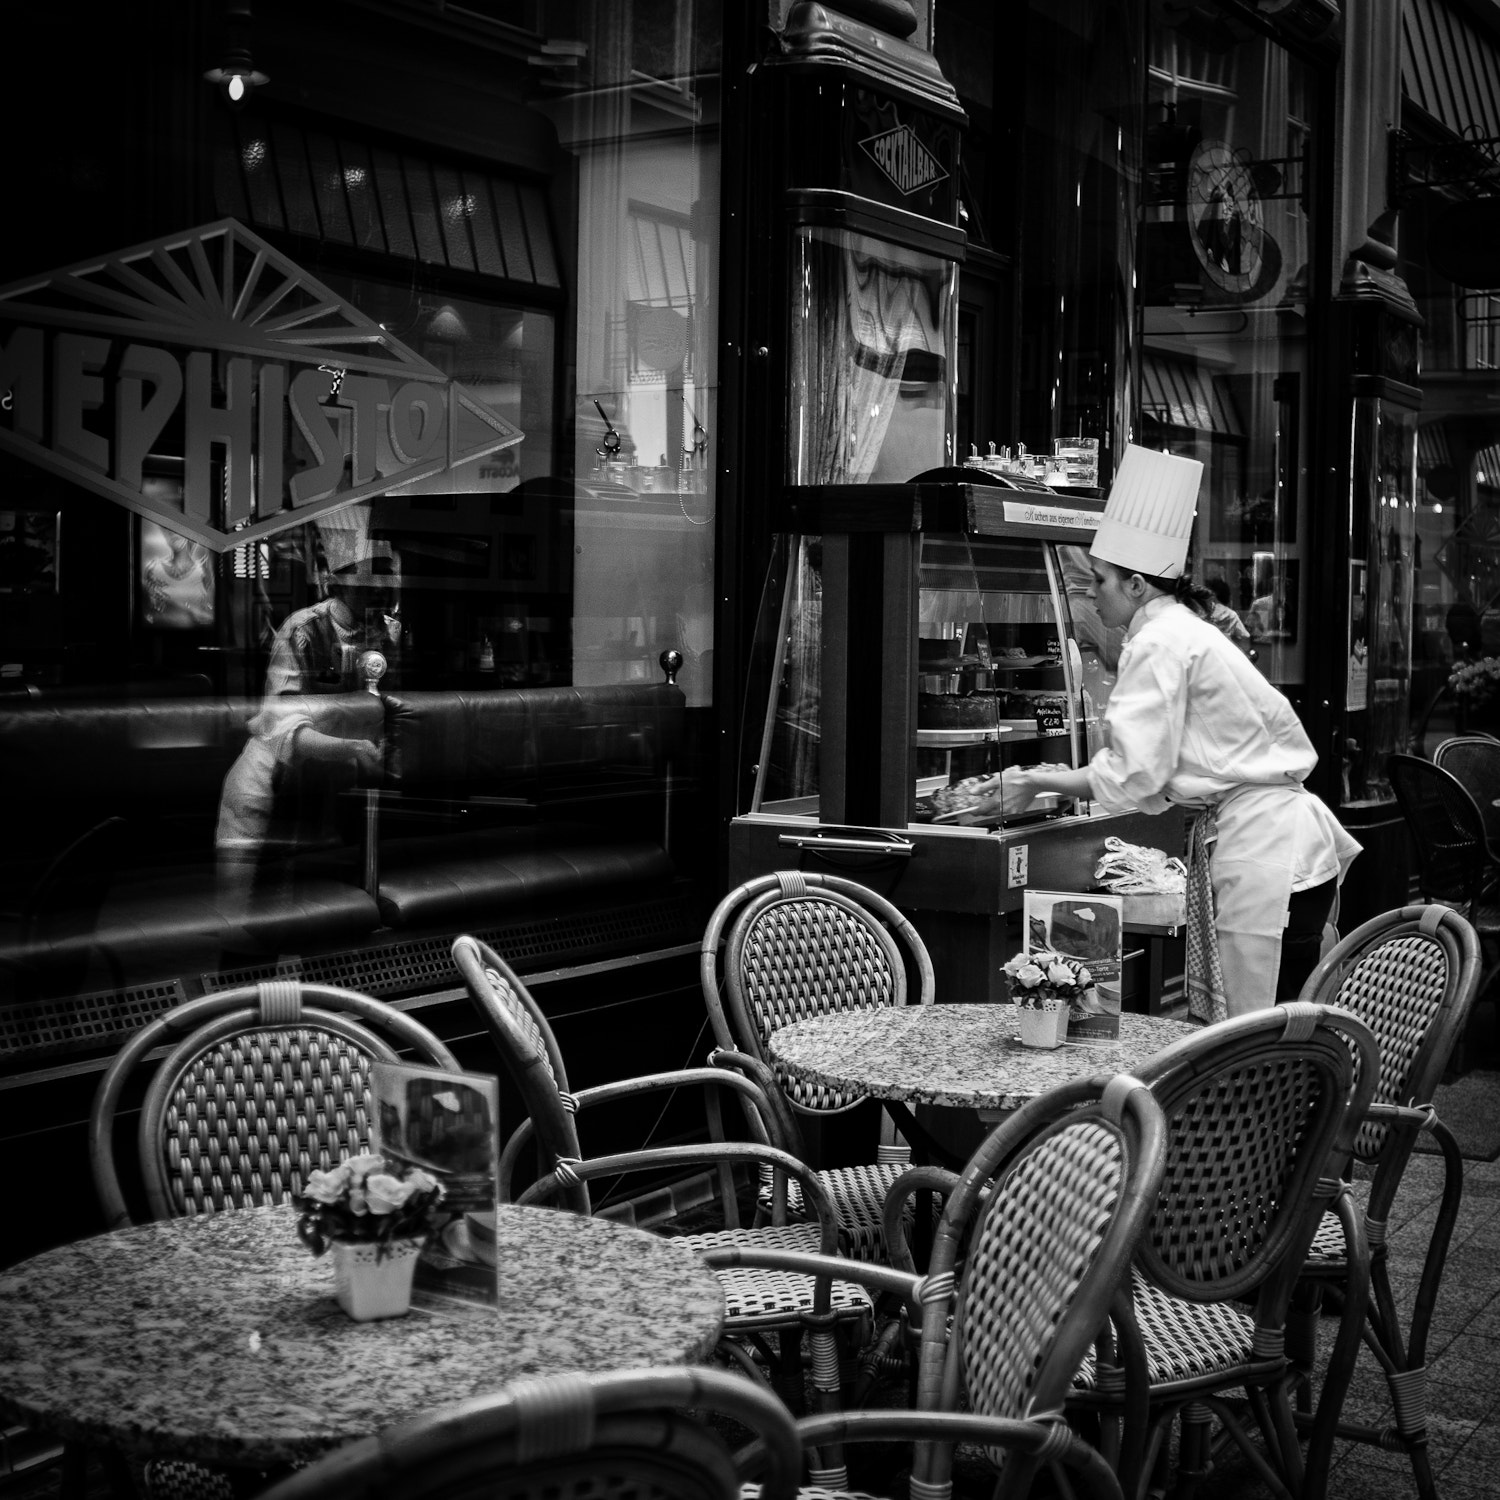 Photograph Lady-Cook by Markus Franke on 500px